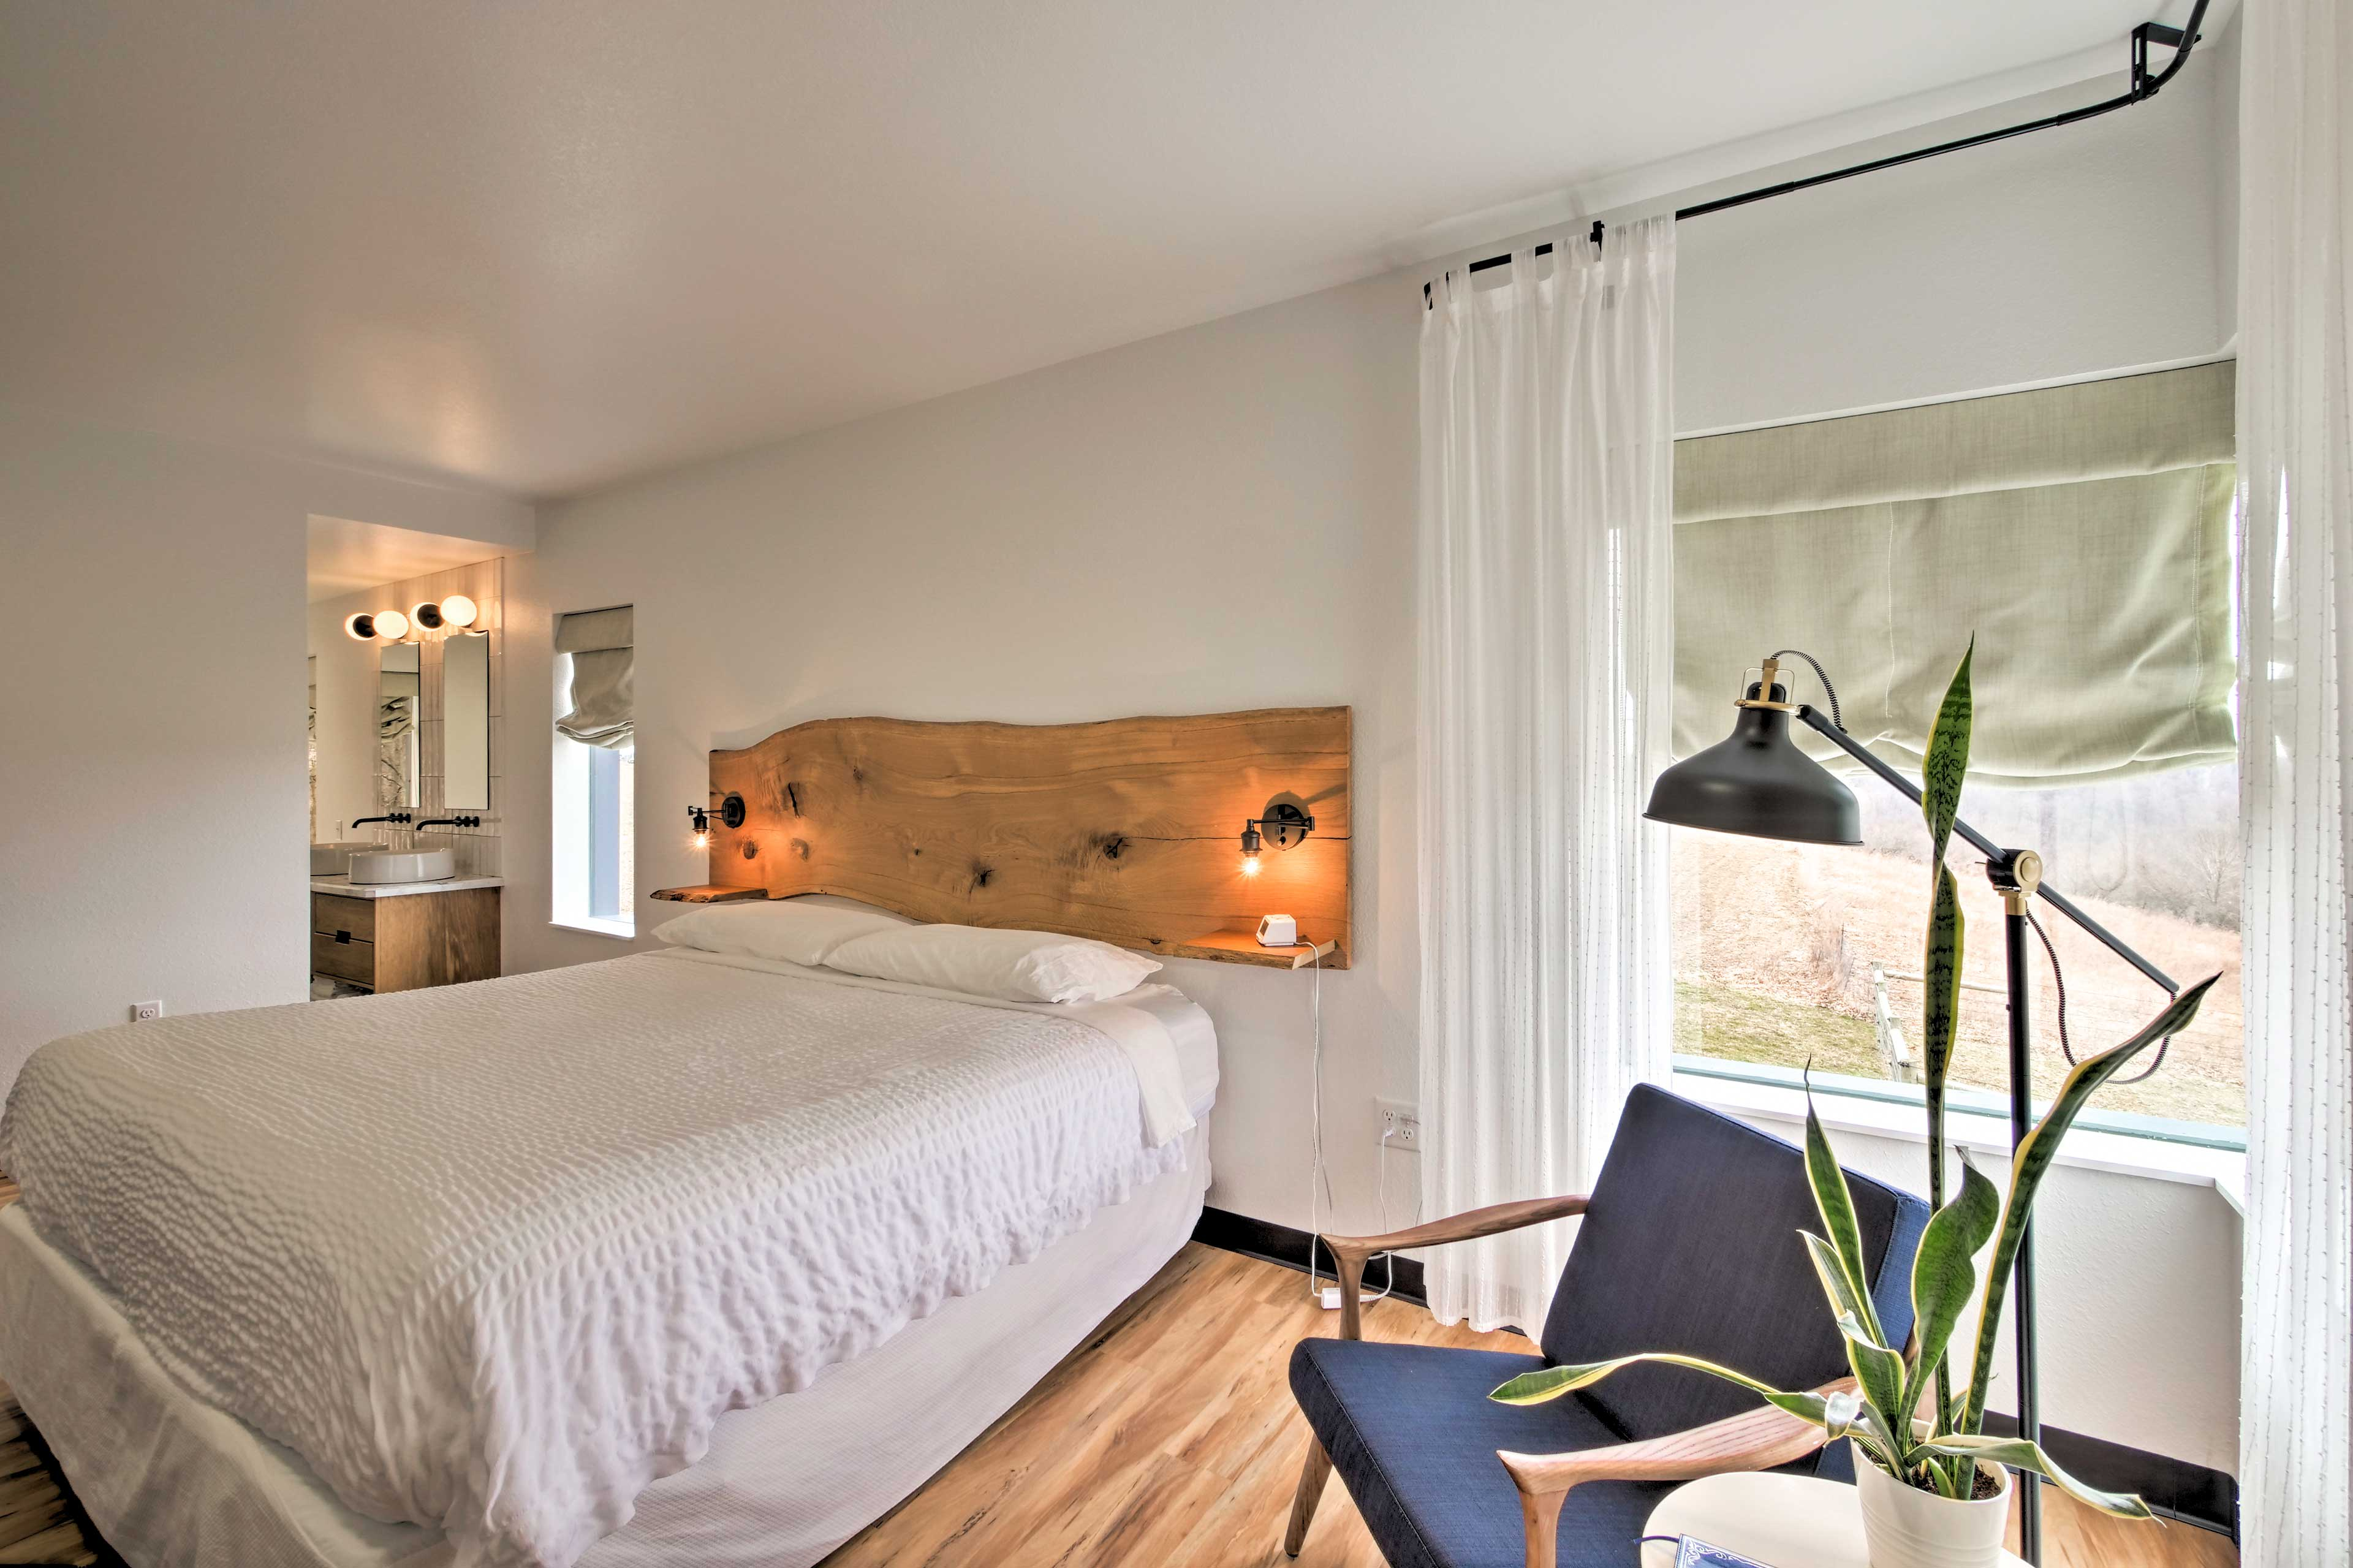 The master bedroom includes a king bed.